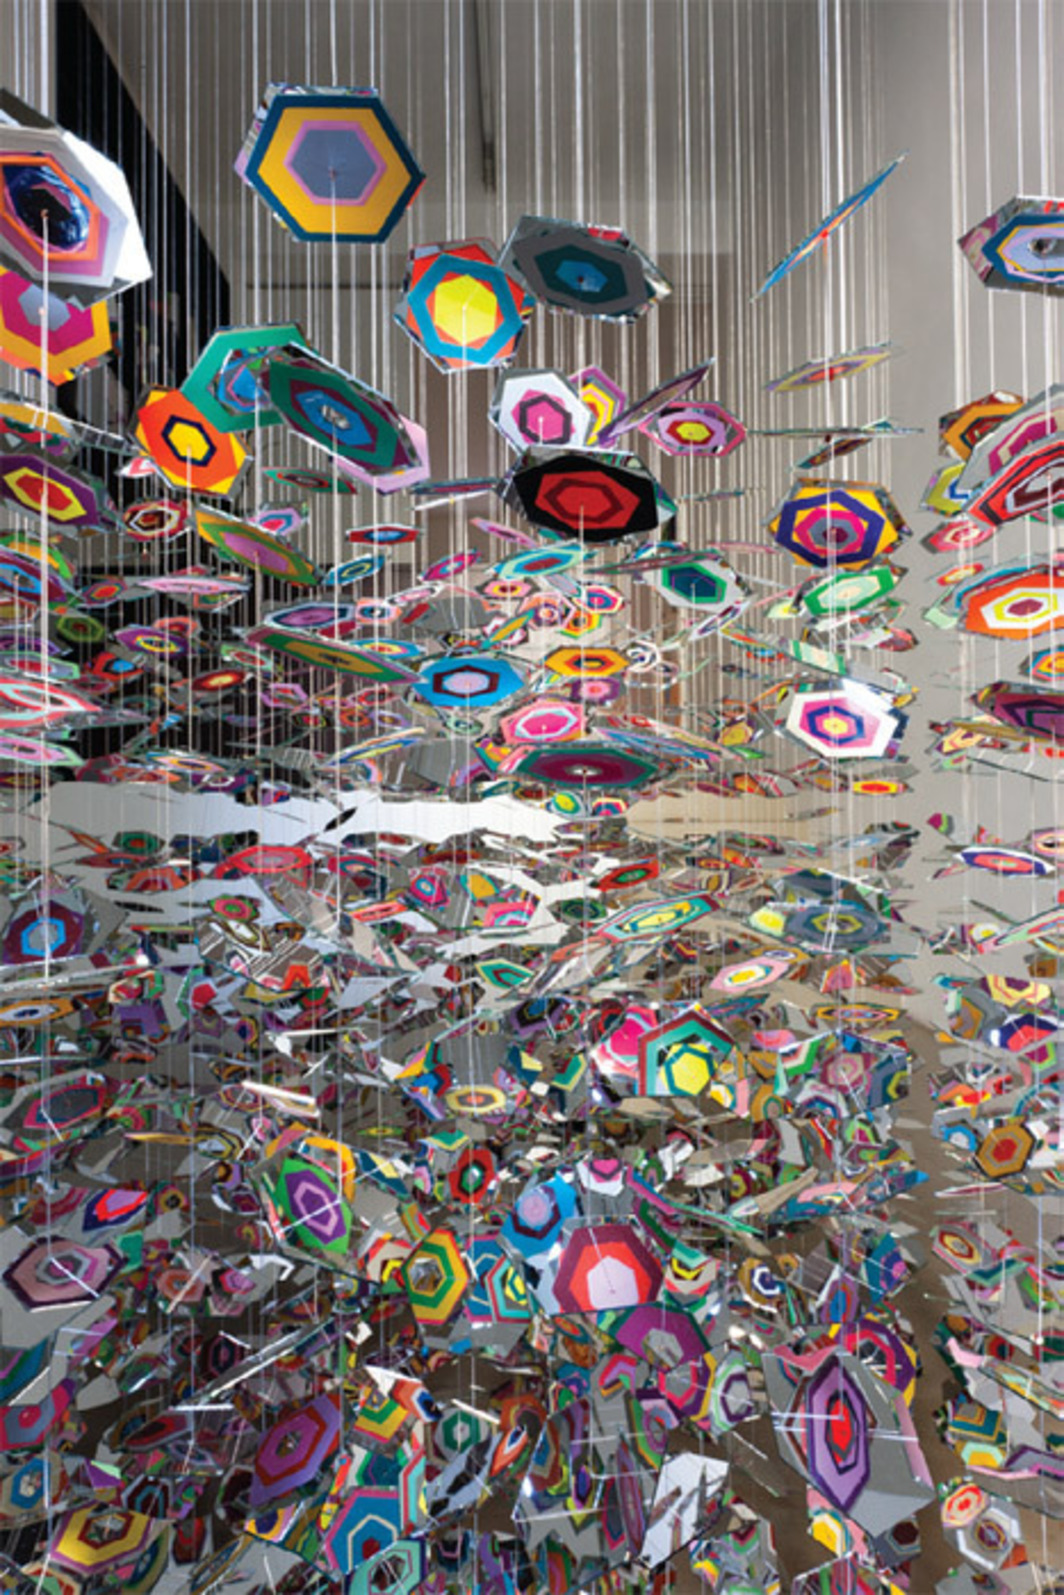 Pae White, Better Places, 2011, mirror, aluminum thread, painted paper, vinyl, dimensions variable.